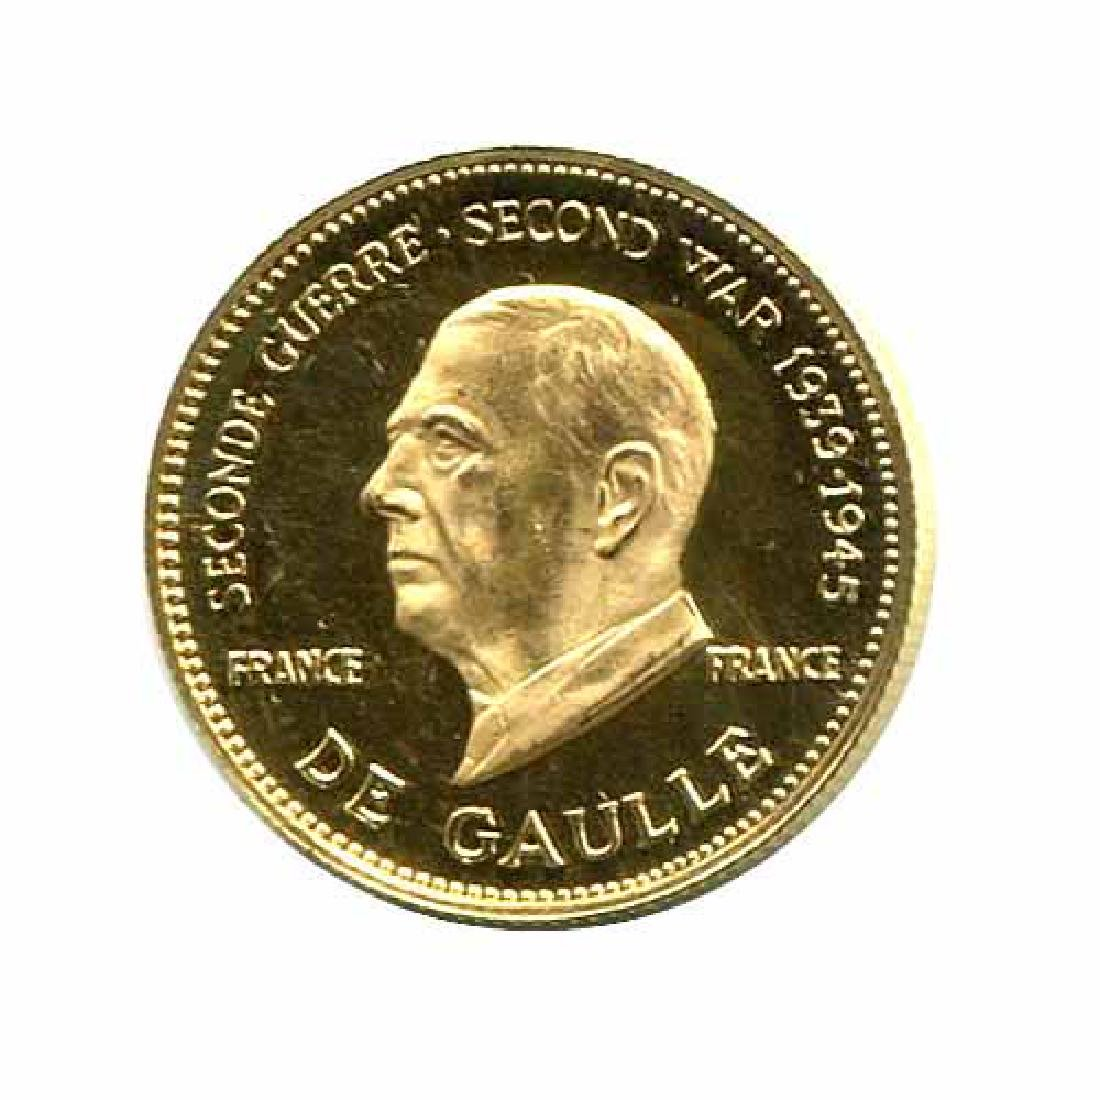 WWII Commemorative Proof Gold Medal 7g. 1958 De Gaulle